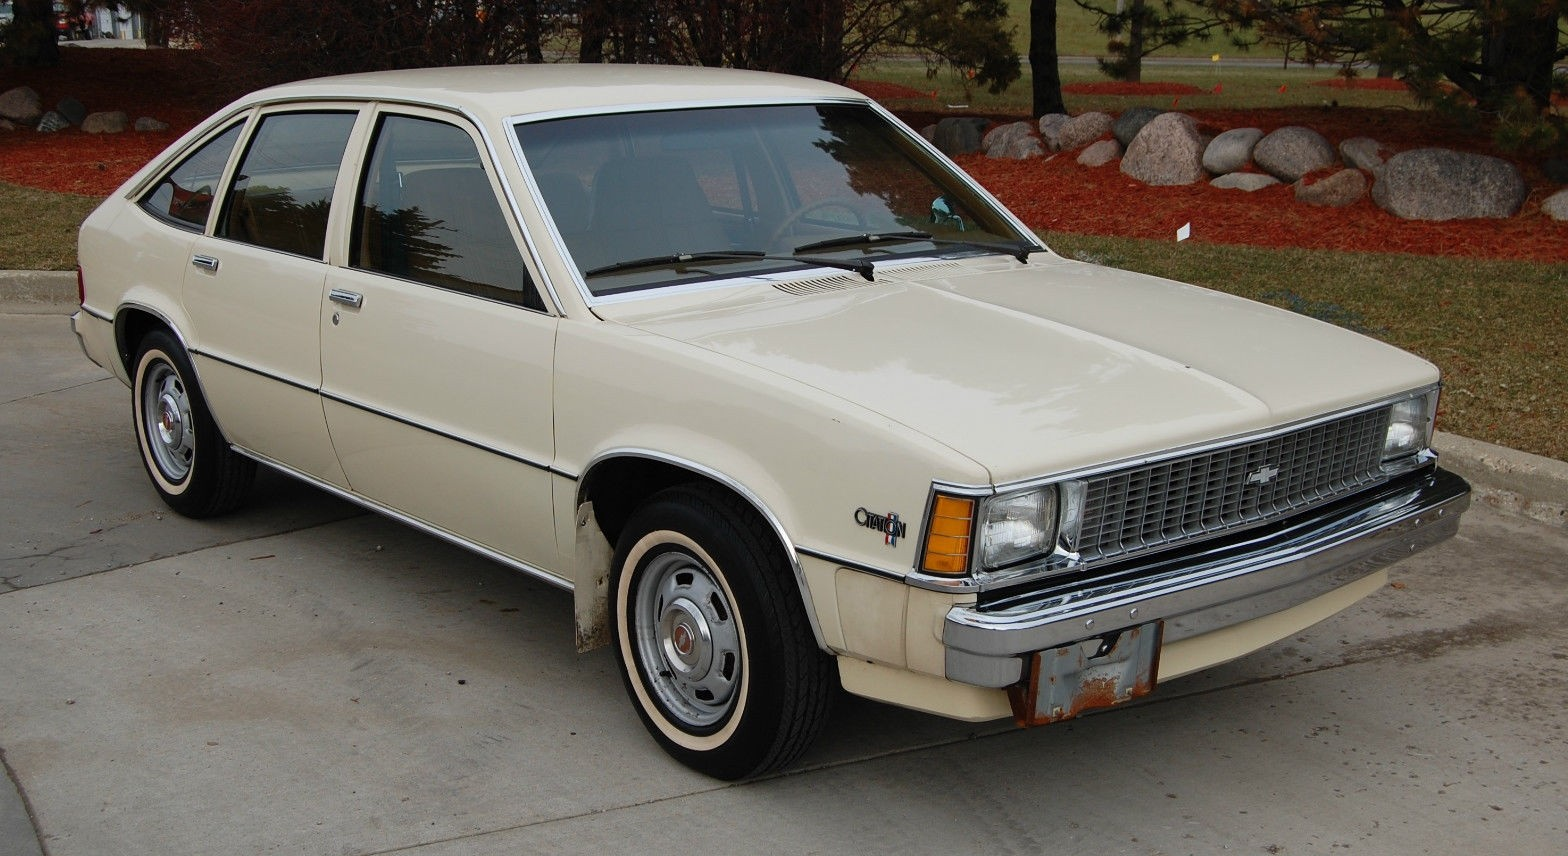 Old Chevy Cars >> Lovable Loser: 1980 Chevy Citation